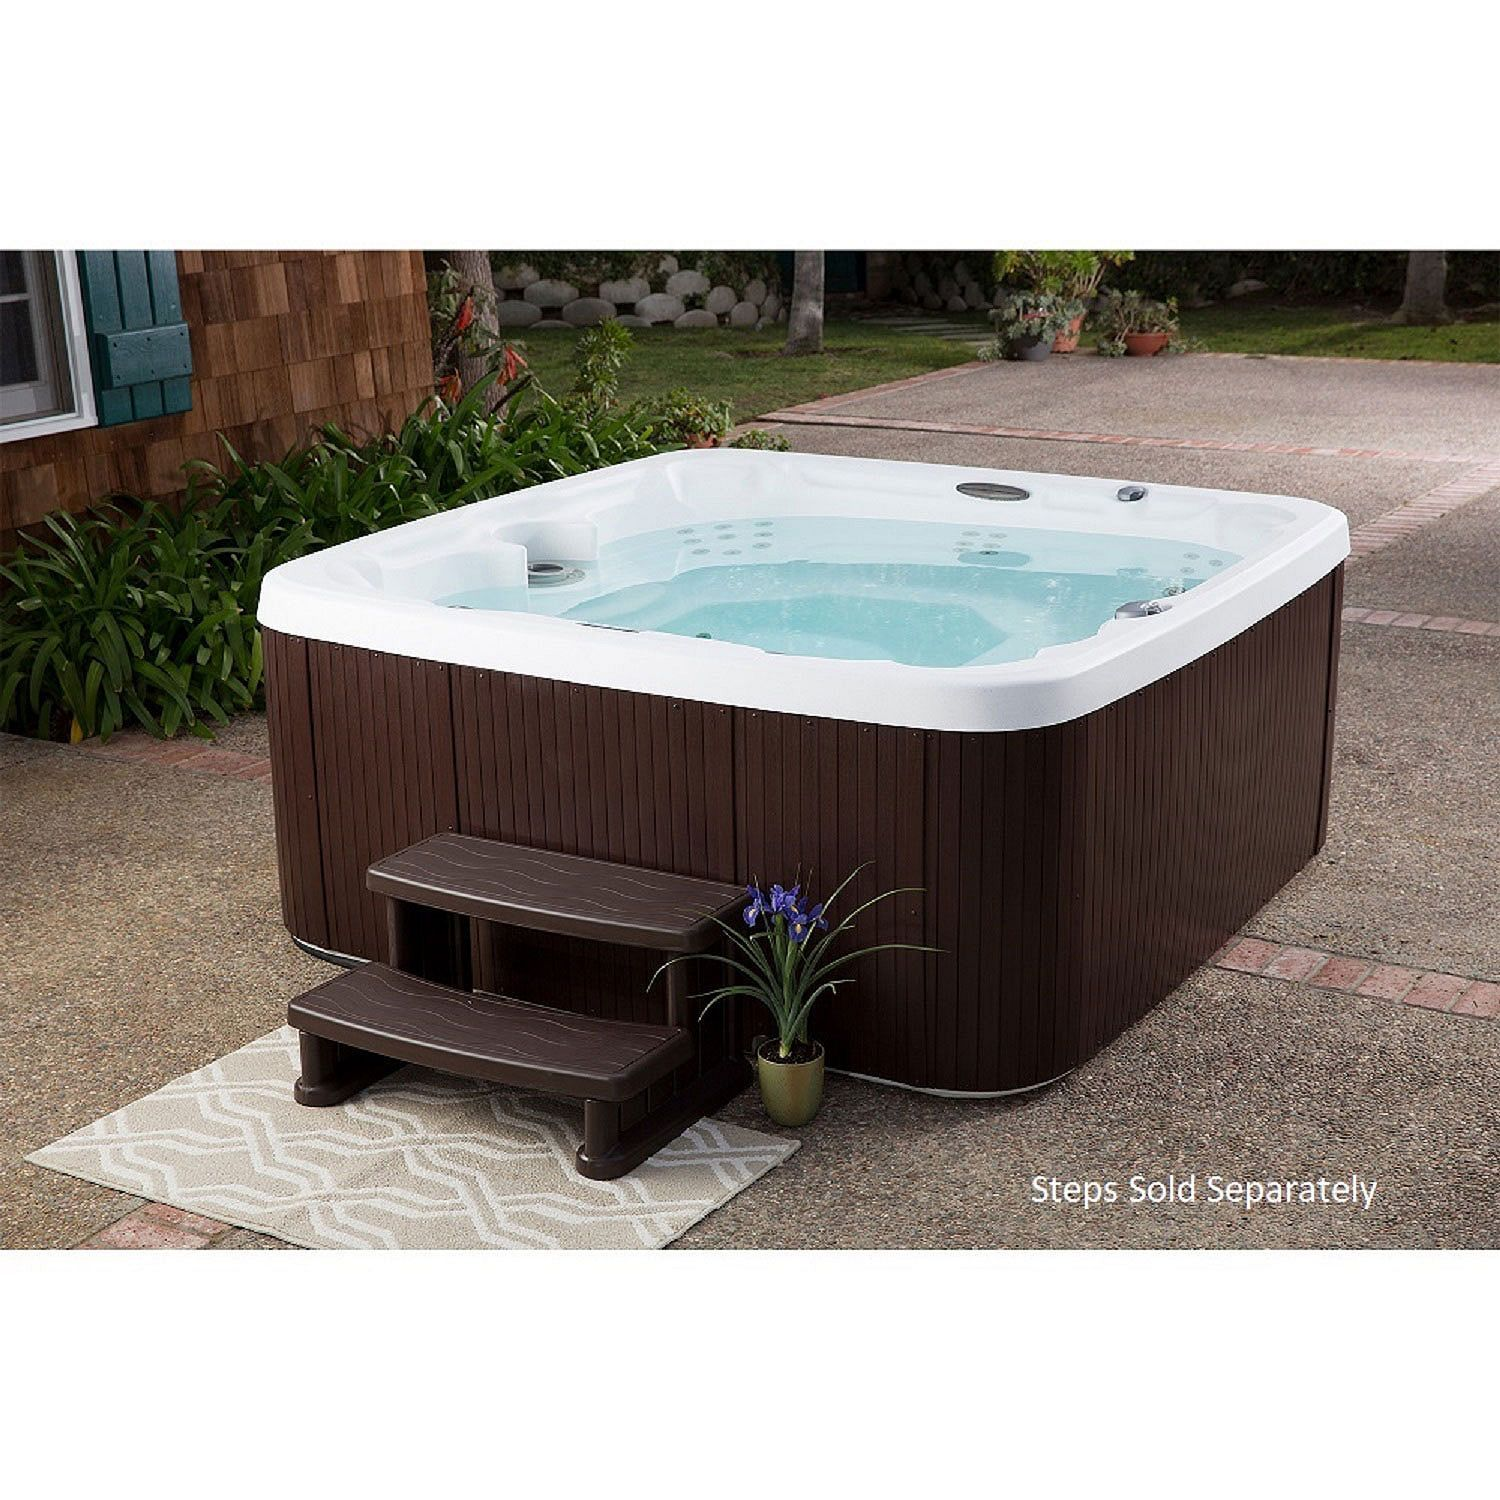 Lifesmart Ls600dx 7 Person 65 Jet Spa Sam S Club Spa Hot Tubs Inflatable Hot Tubs Hot Tub